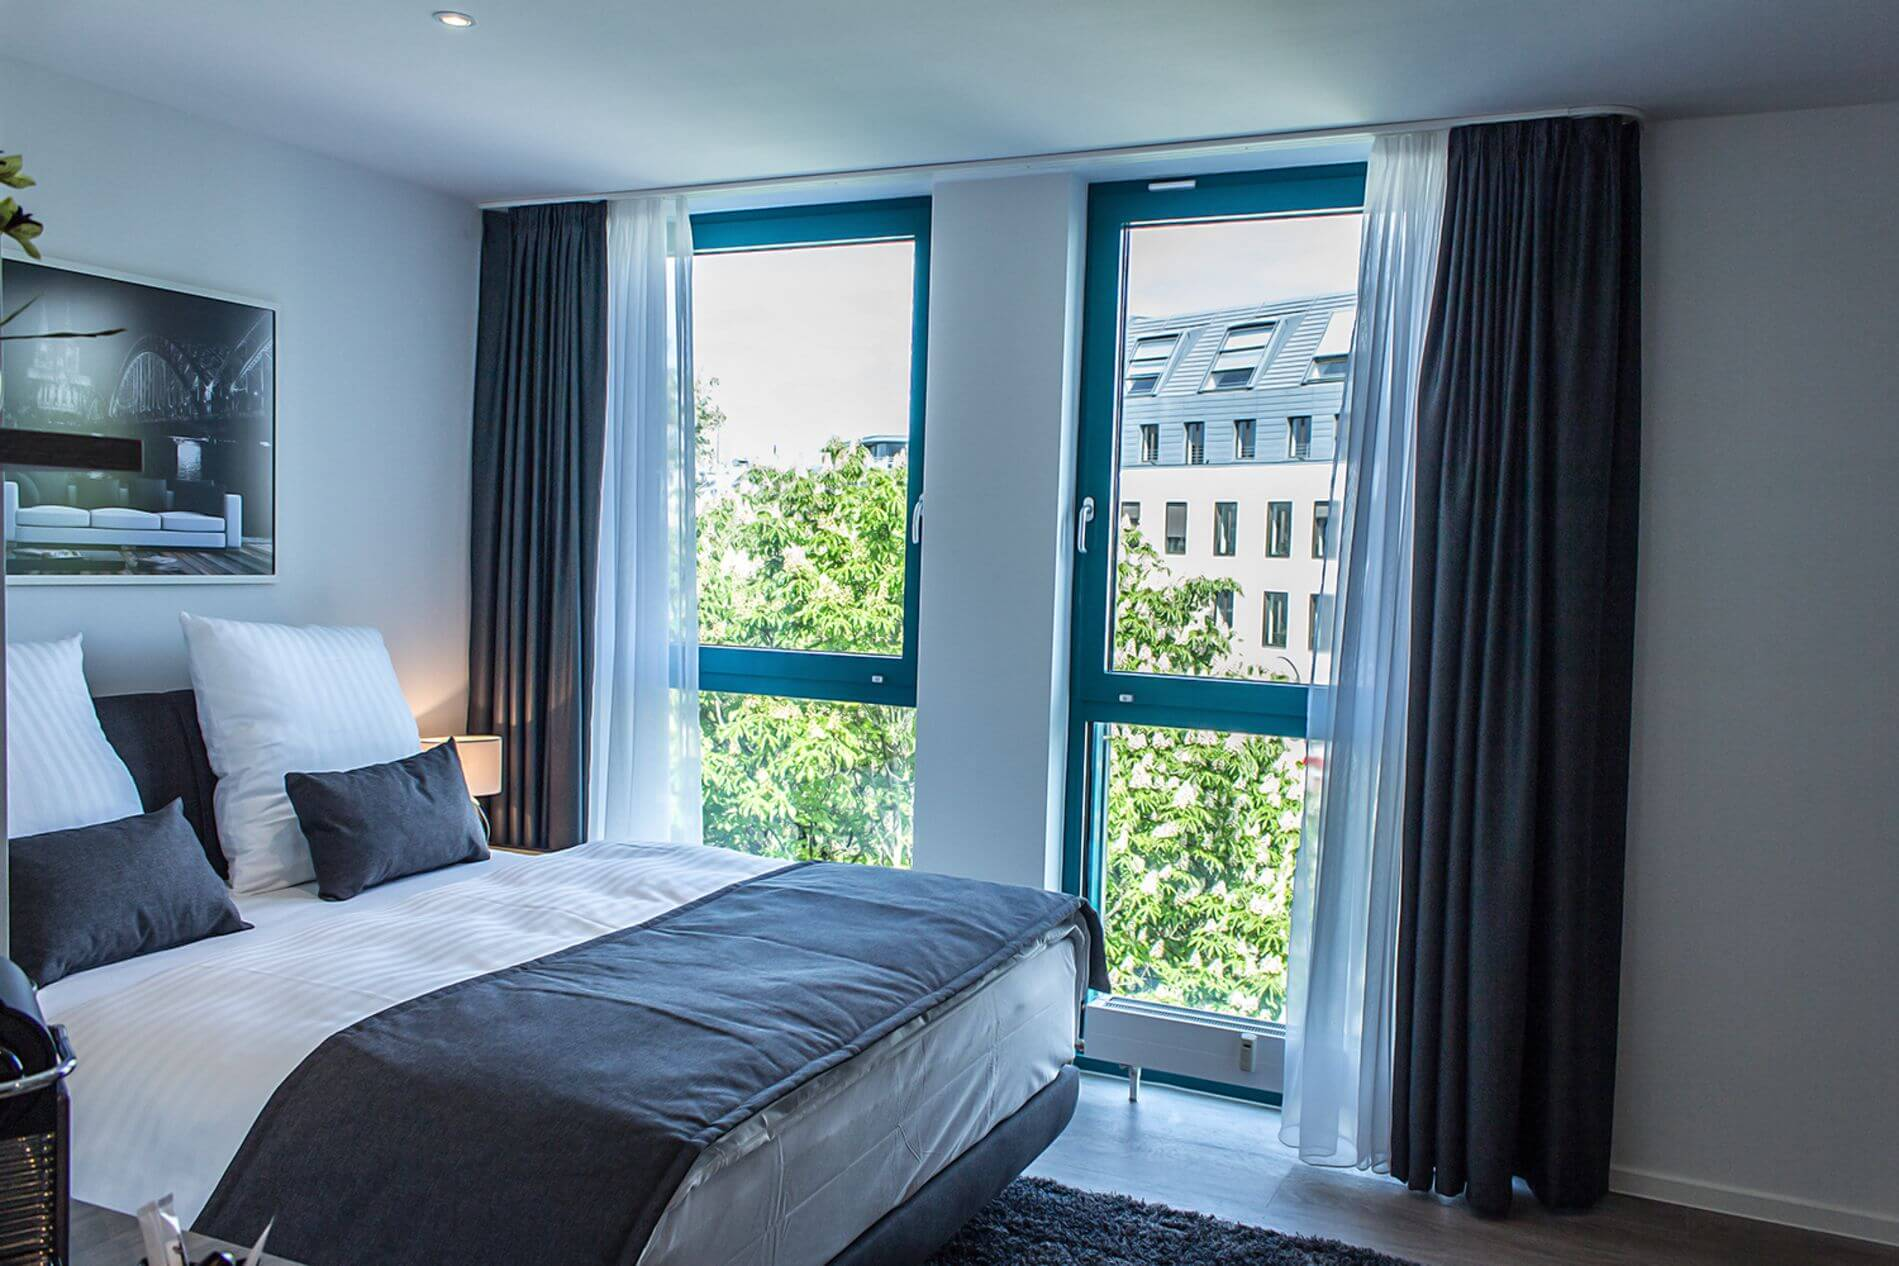 Studio apartment rental in Cologne with everything you need